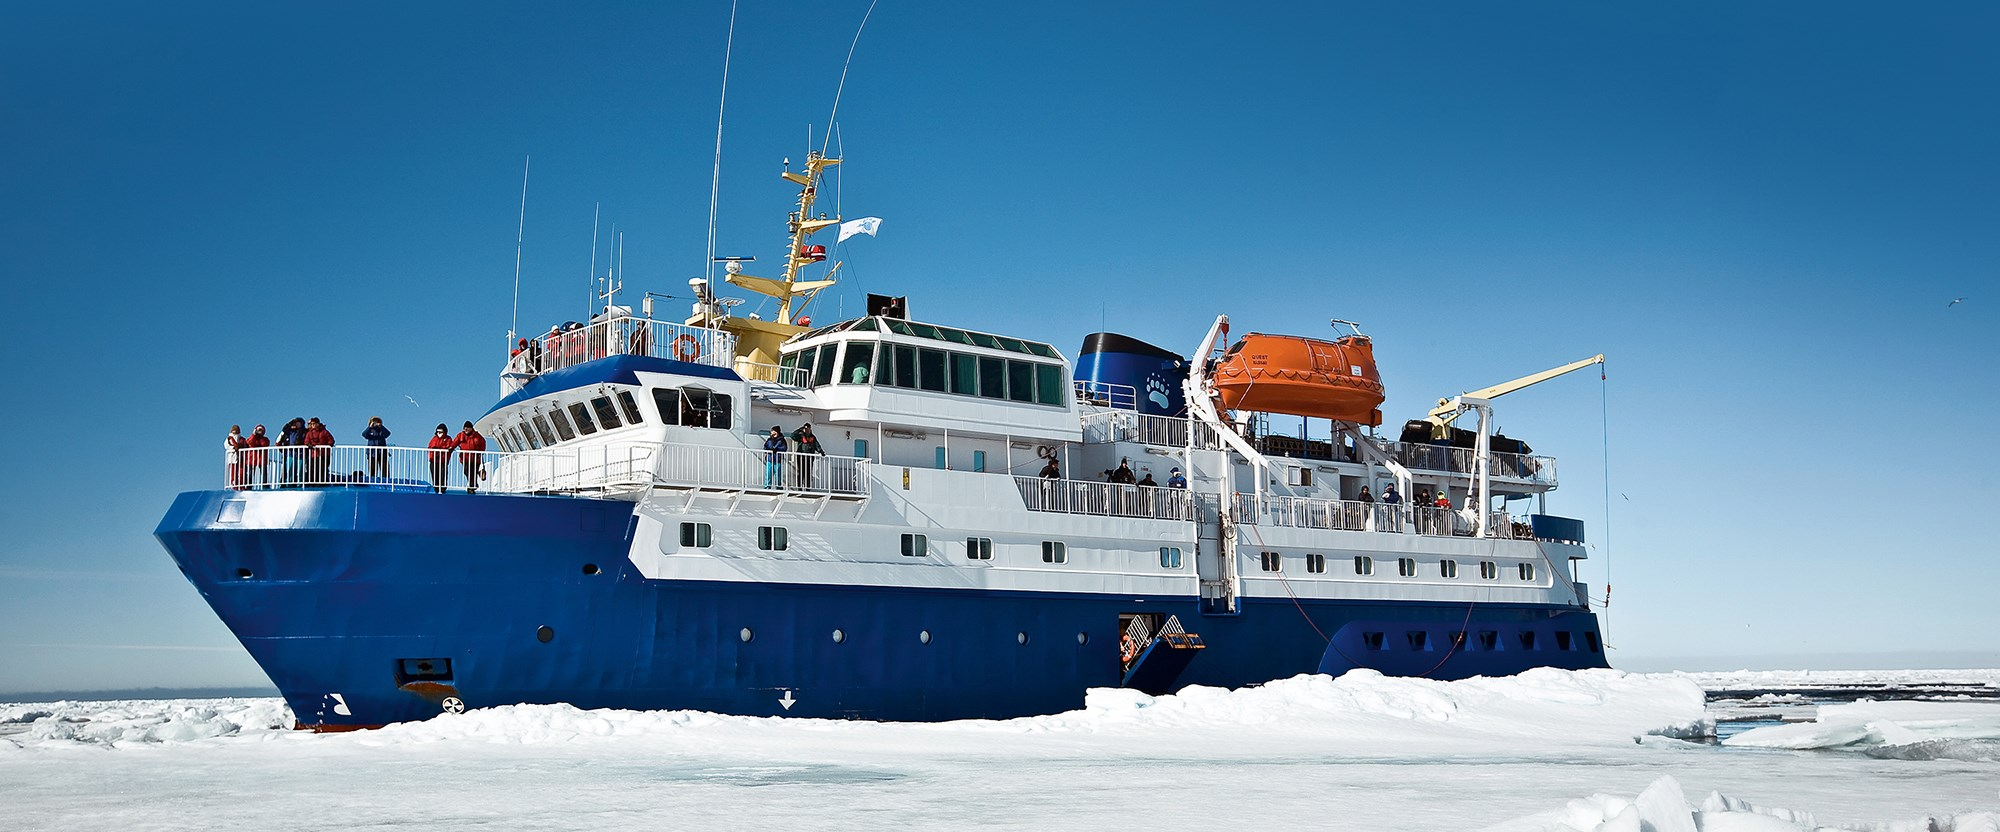 Quest, the ship servicing Northern Lights Tour in Northern Norway